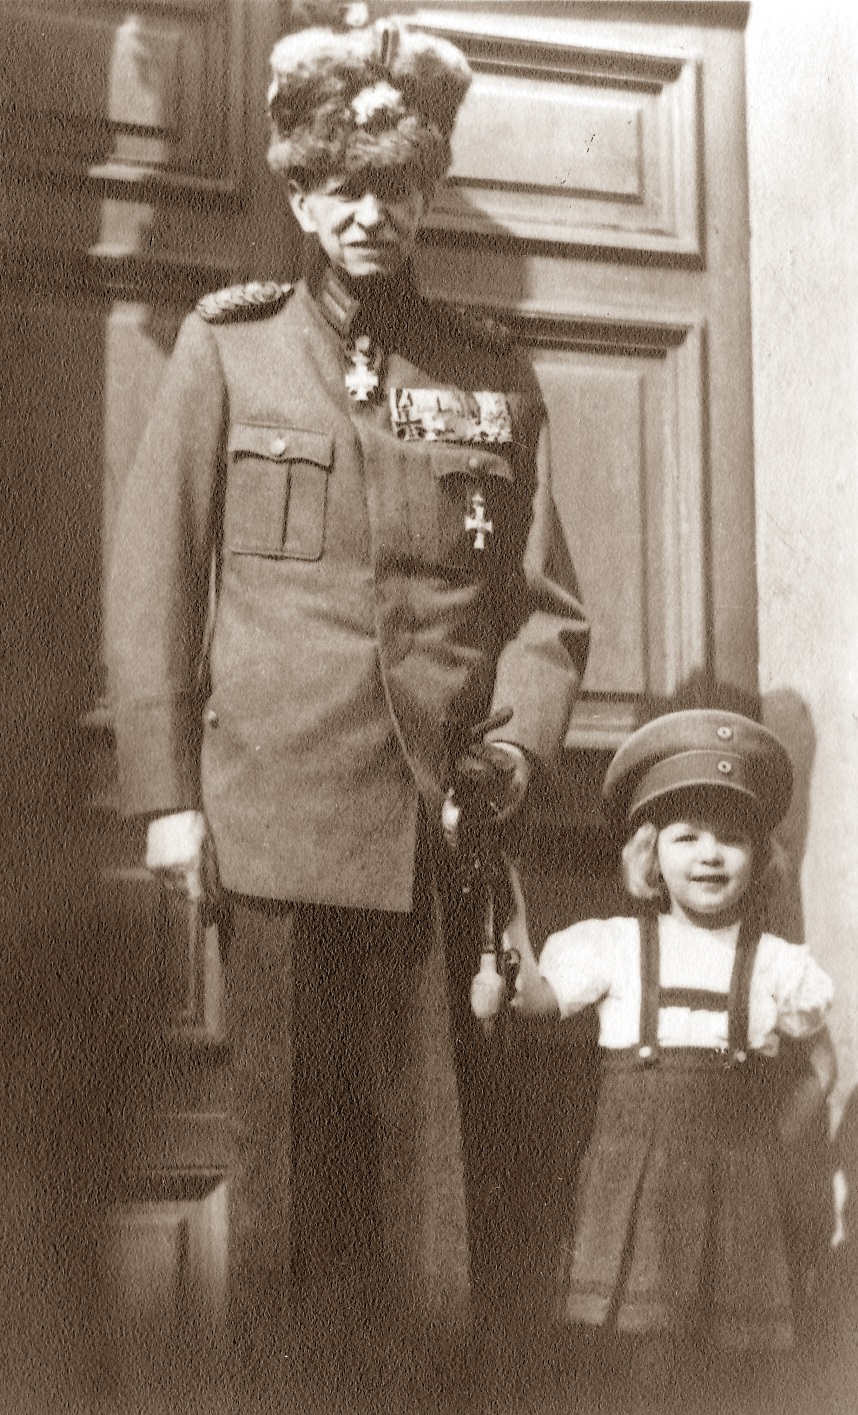 Figure 2: Prinz Heinrich Prinz von Schönburg-Waldenburg wearing his medal bar